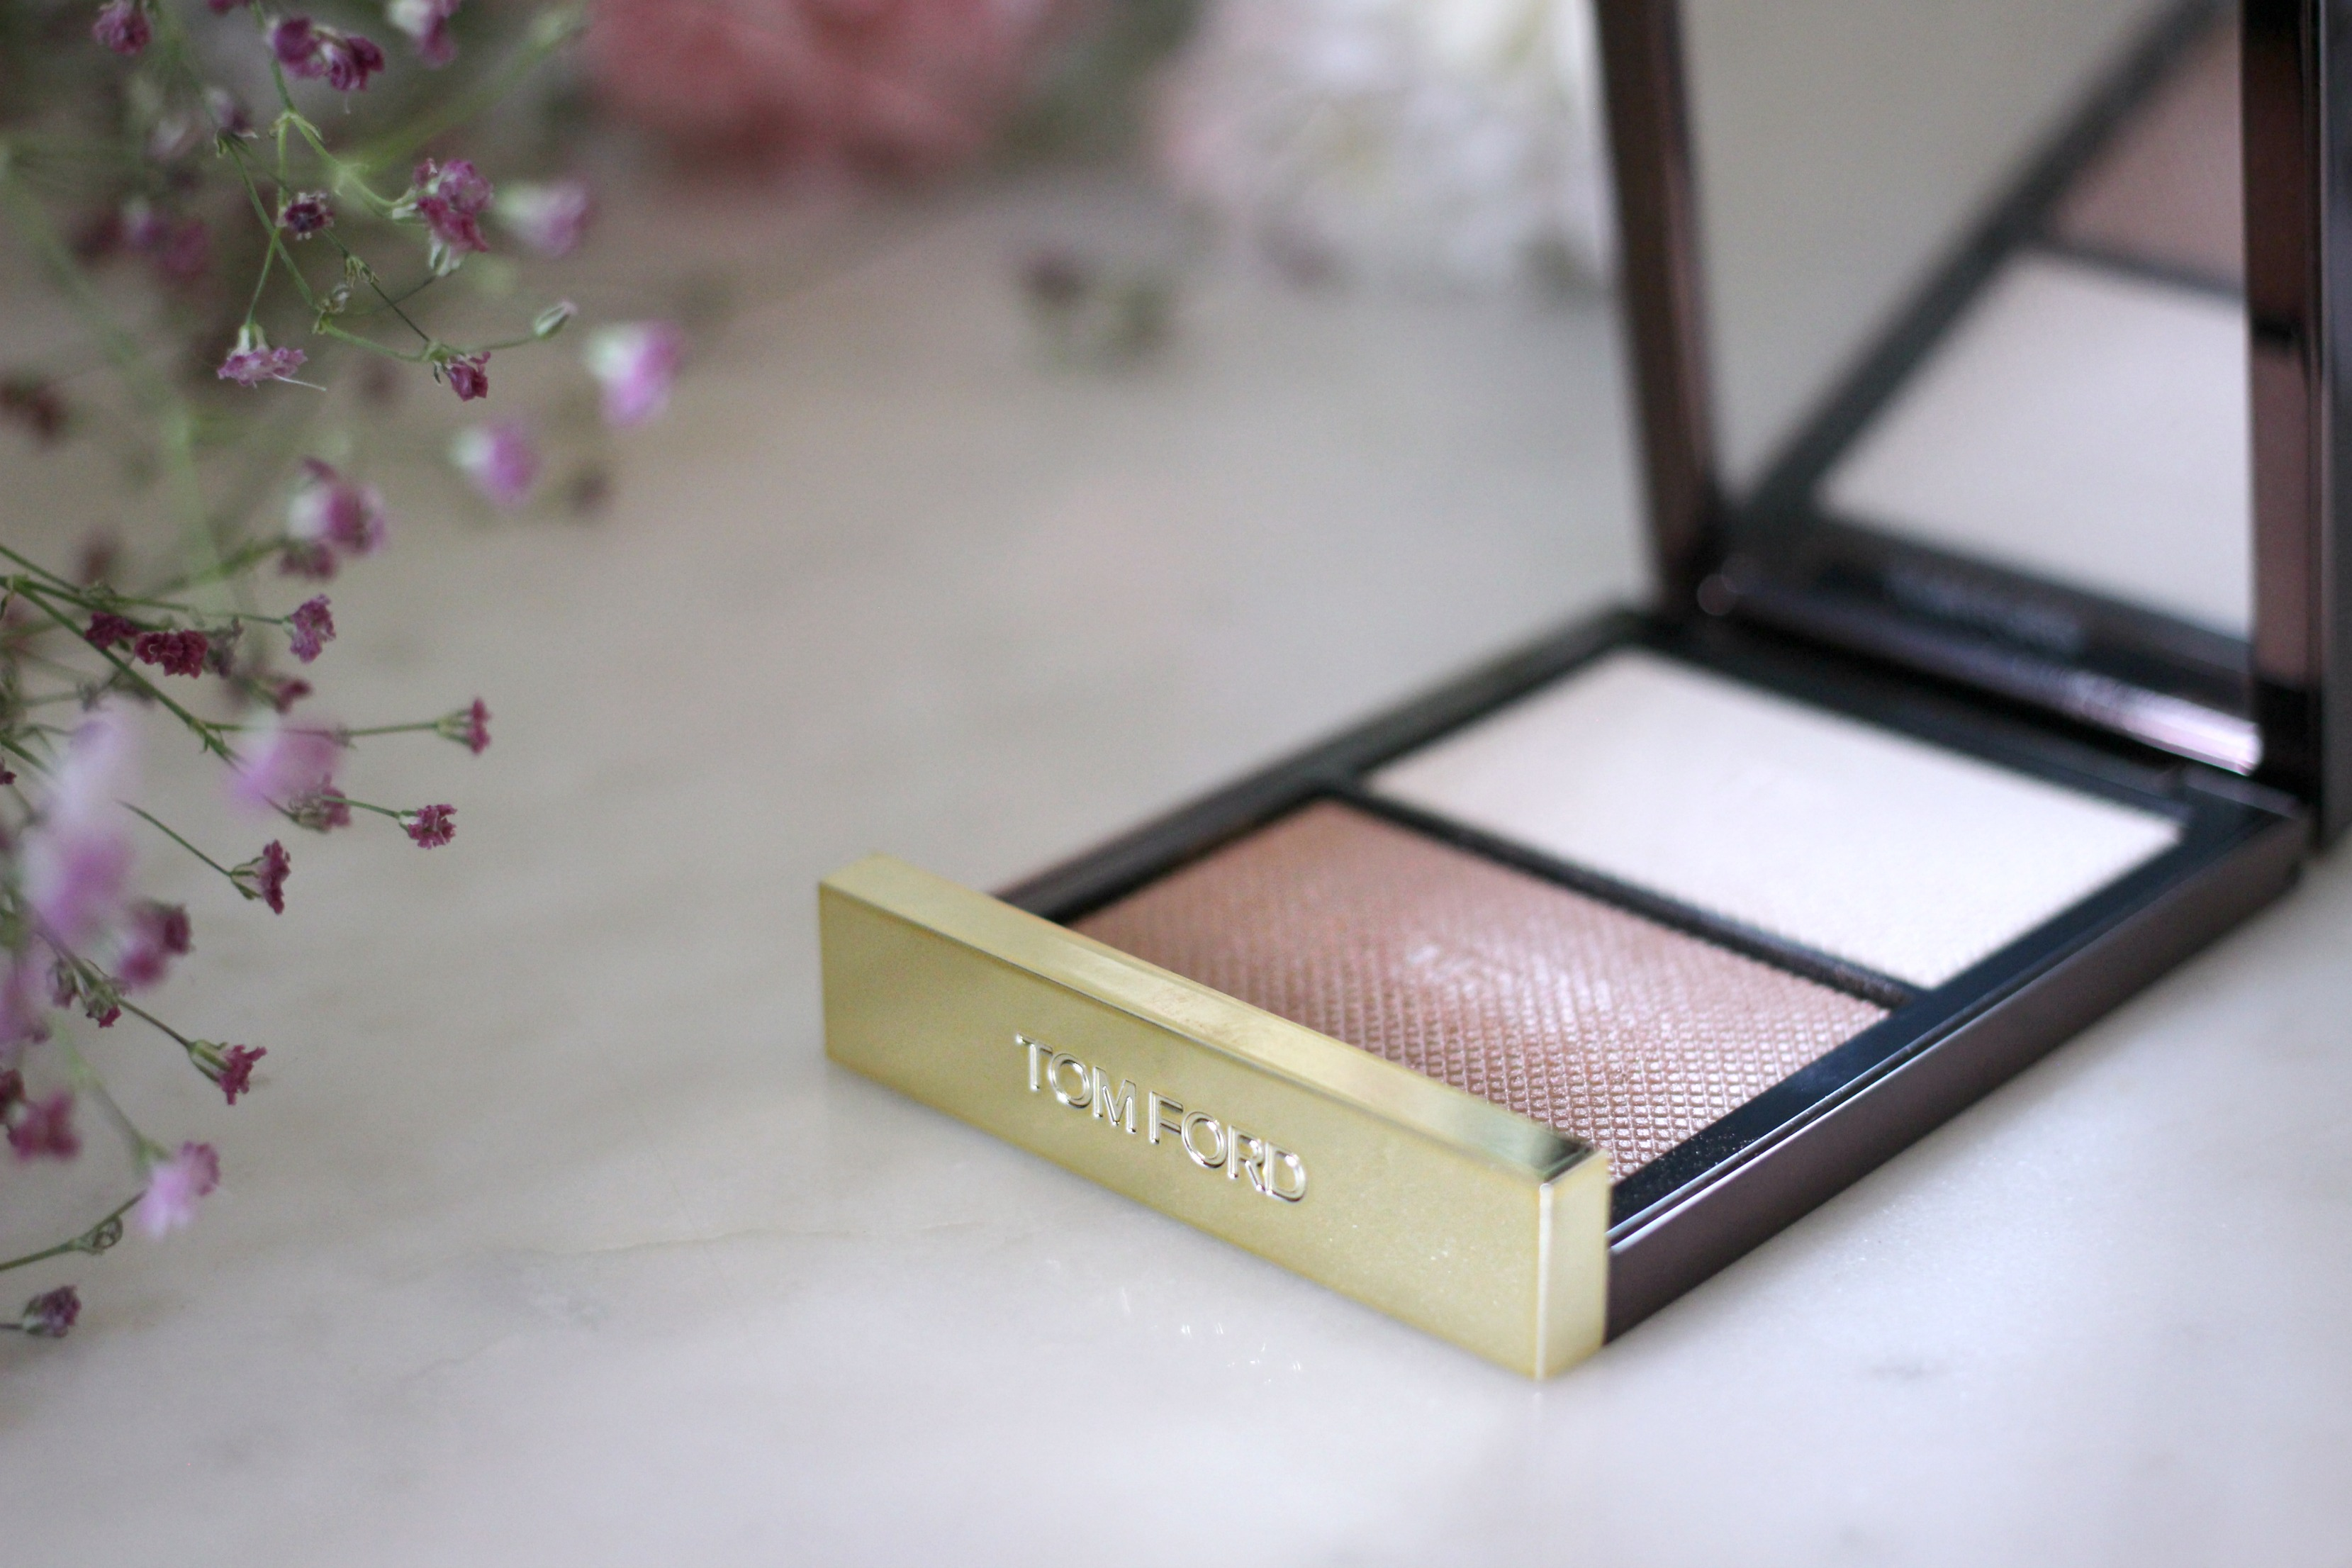 Tom Ford Spring Summer 2016 Beauty Makeup Collection -  highlight powder review